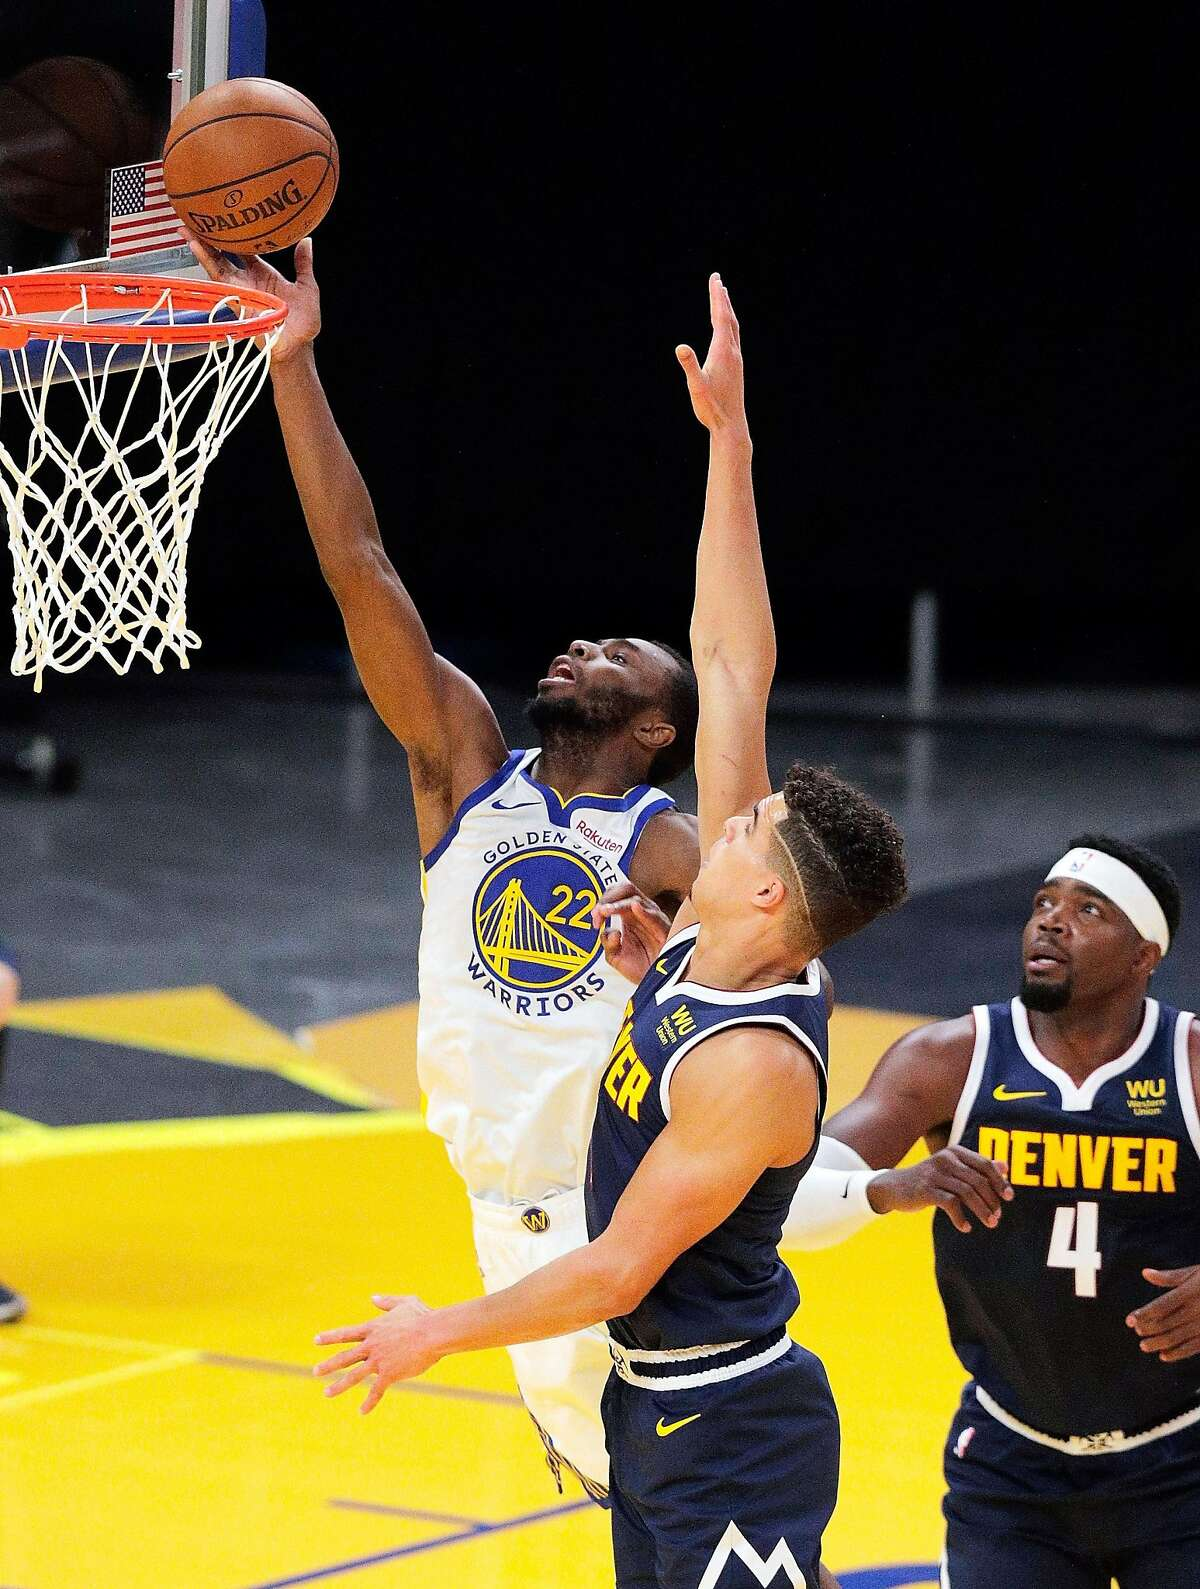 Andrew Wiggins (22) puts up a shot during the first half as the Golden State Warriors played the Denver Nuggets in their first preseason game at Chase Arena in San Francisco, Calif., on Saturday, December 12, 2020.